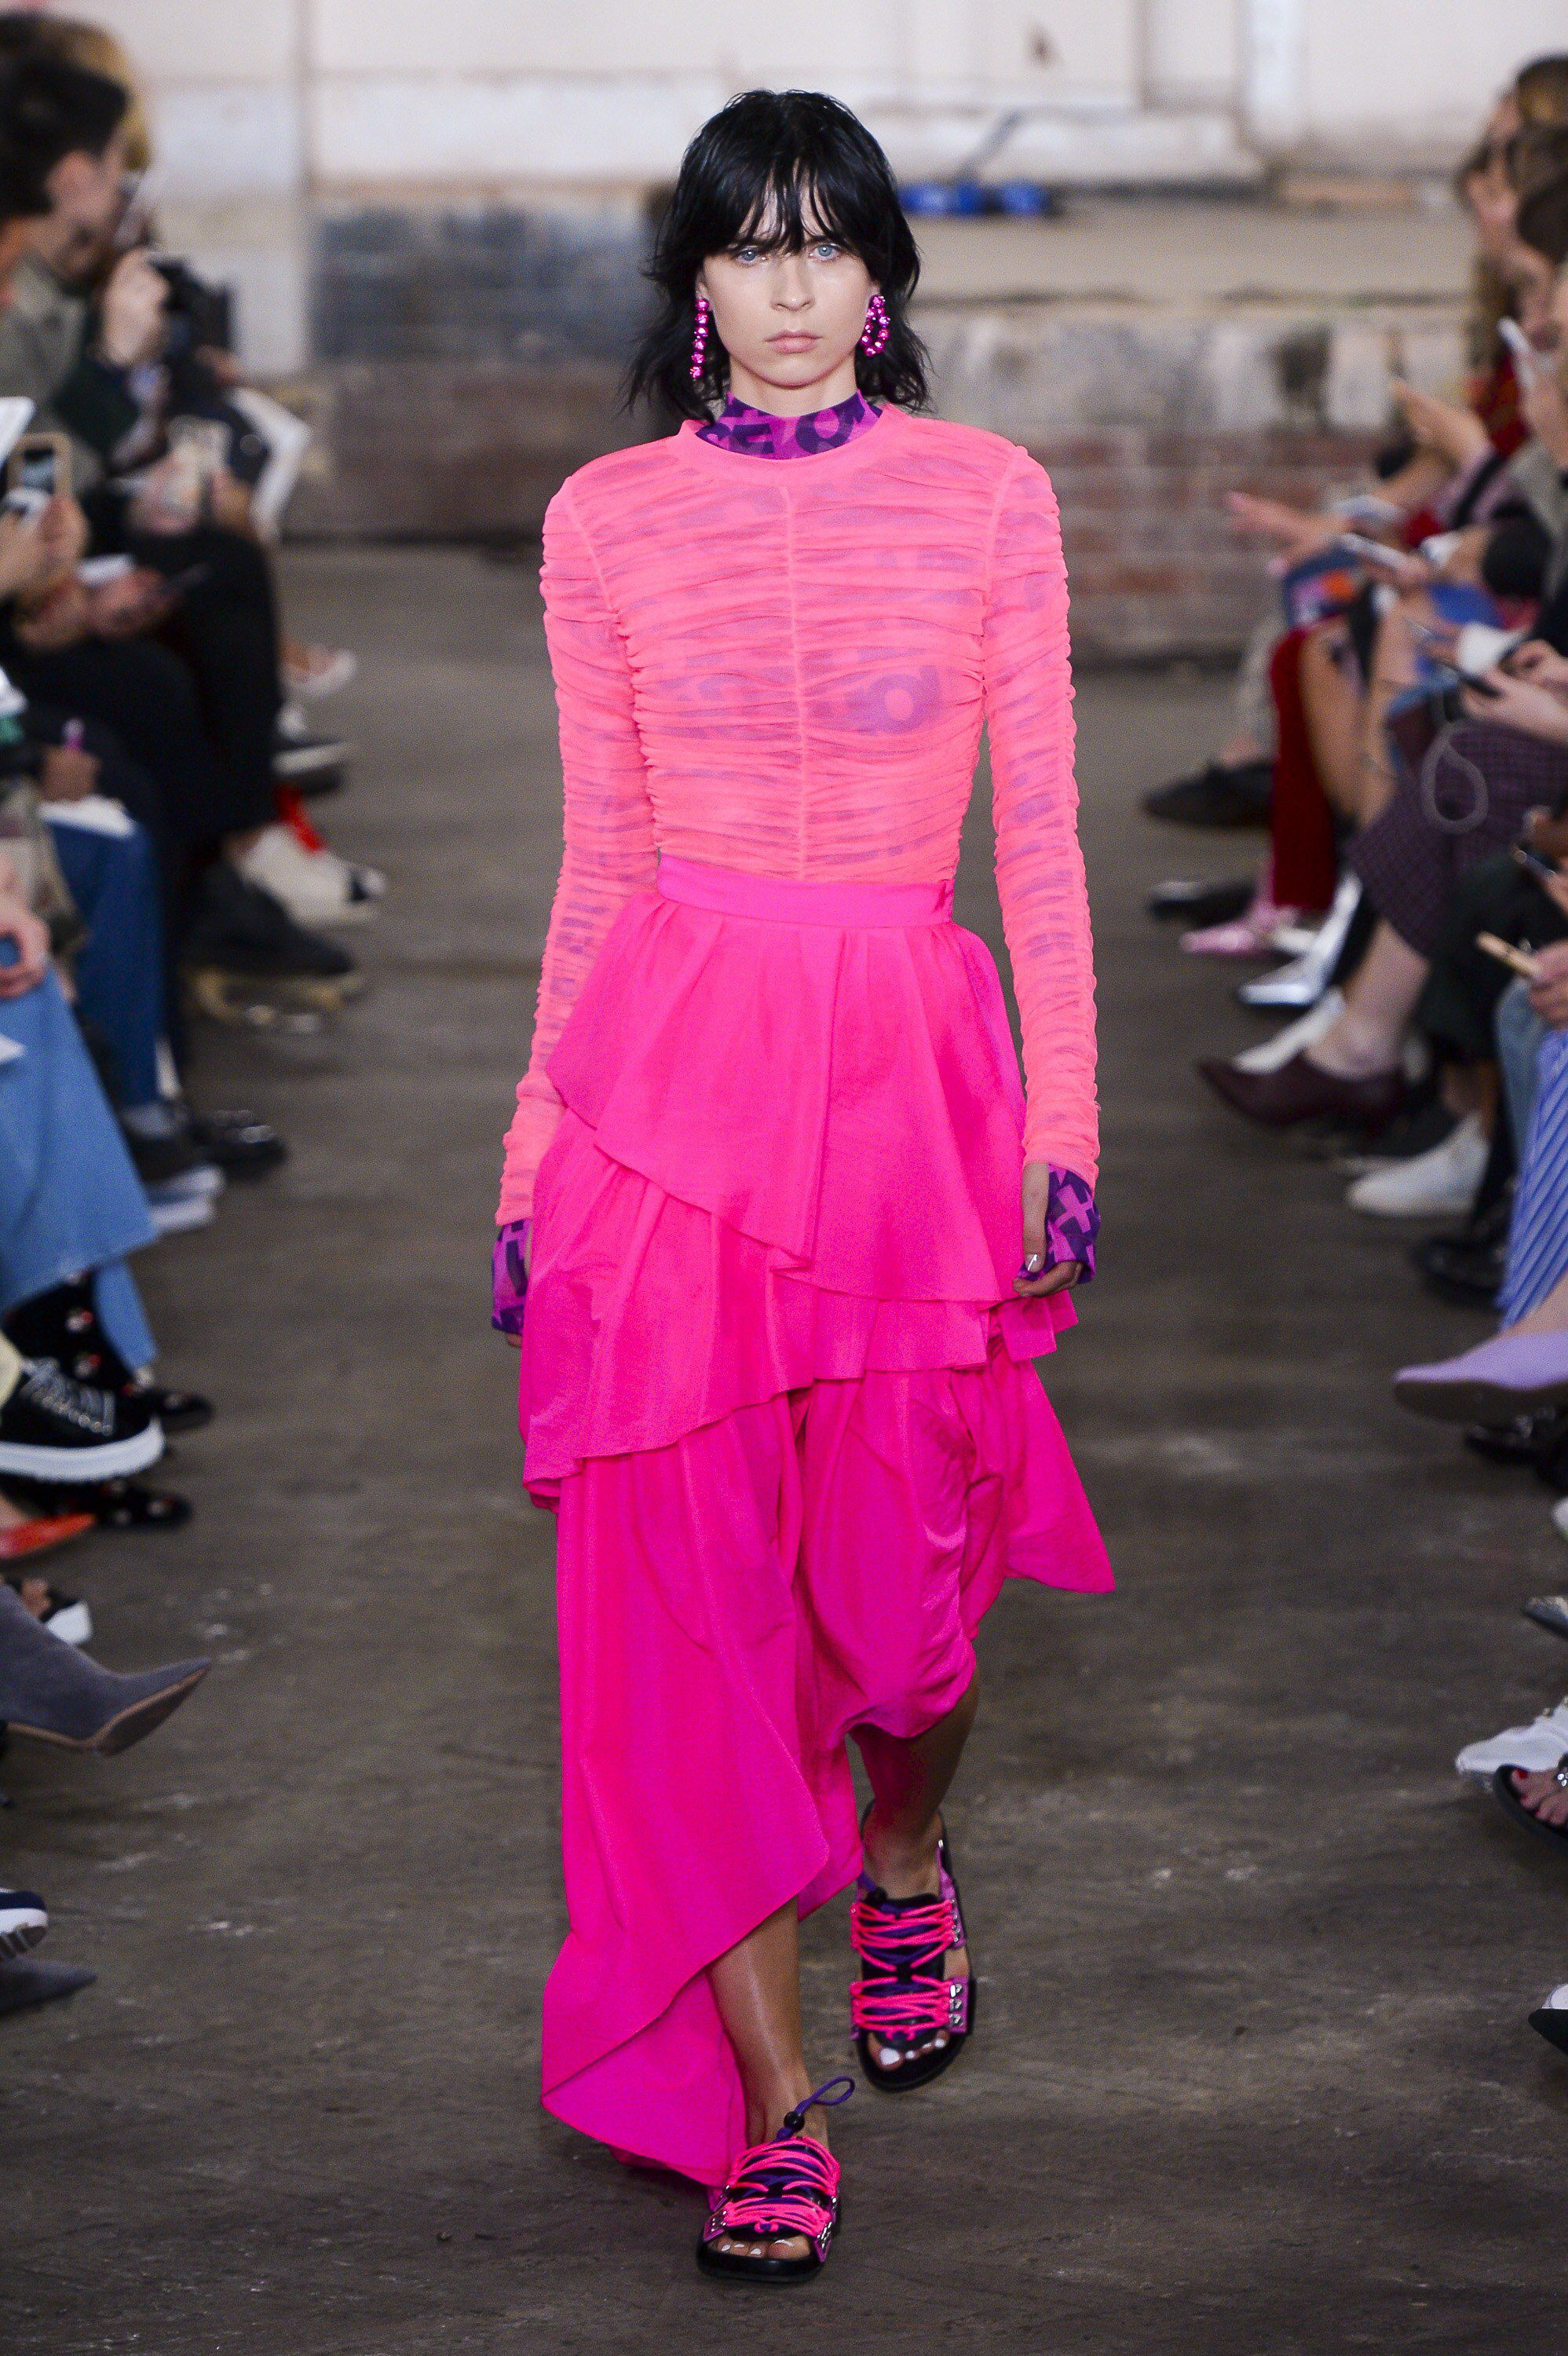 2019 year lifestyle- Was 2019 the year of modest fashion movement